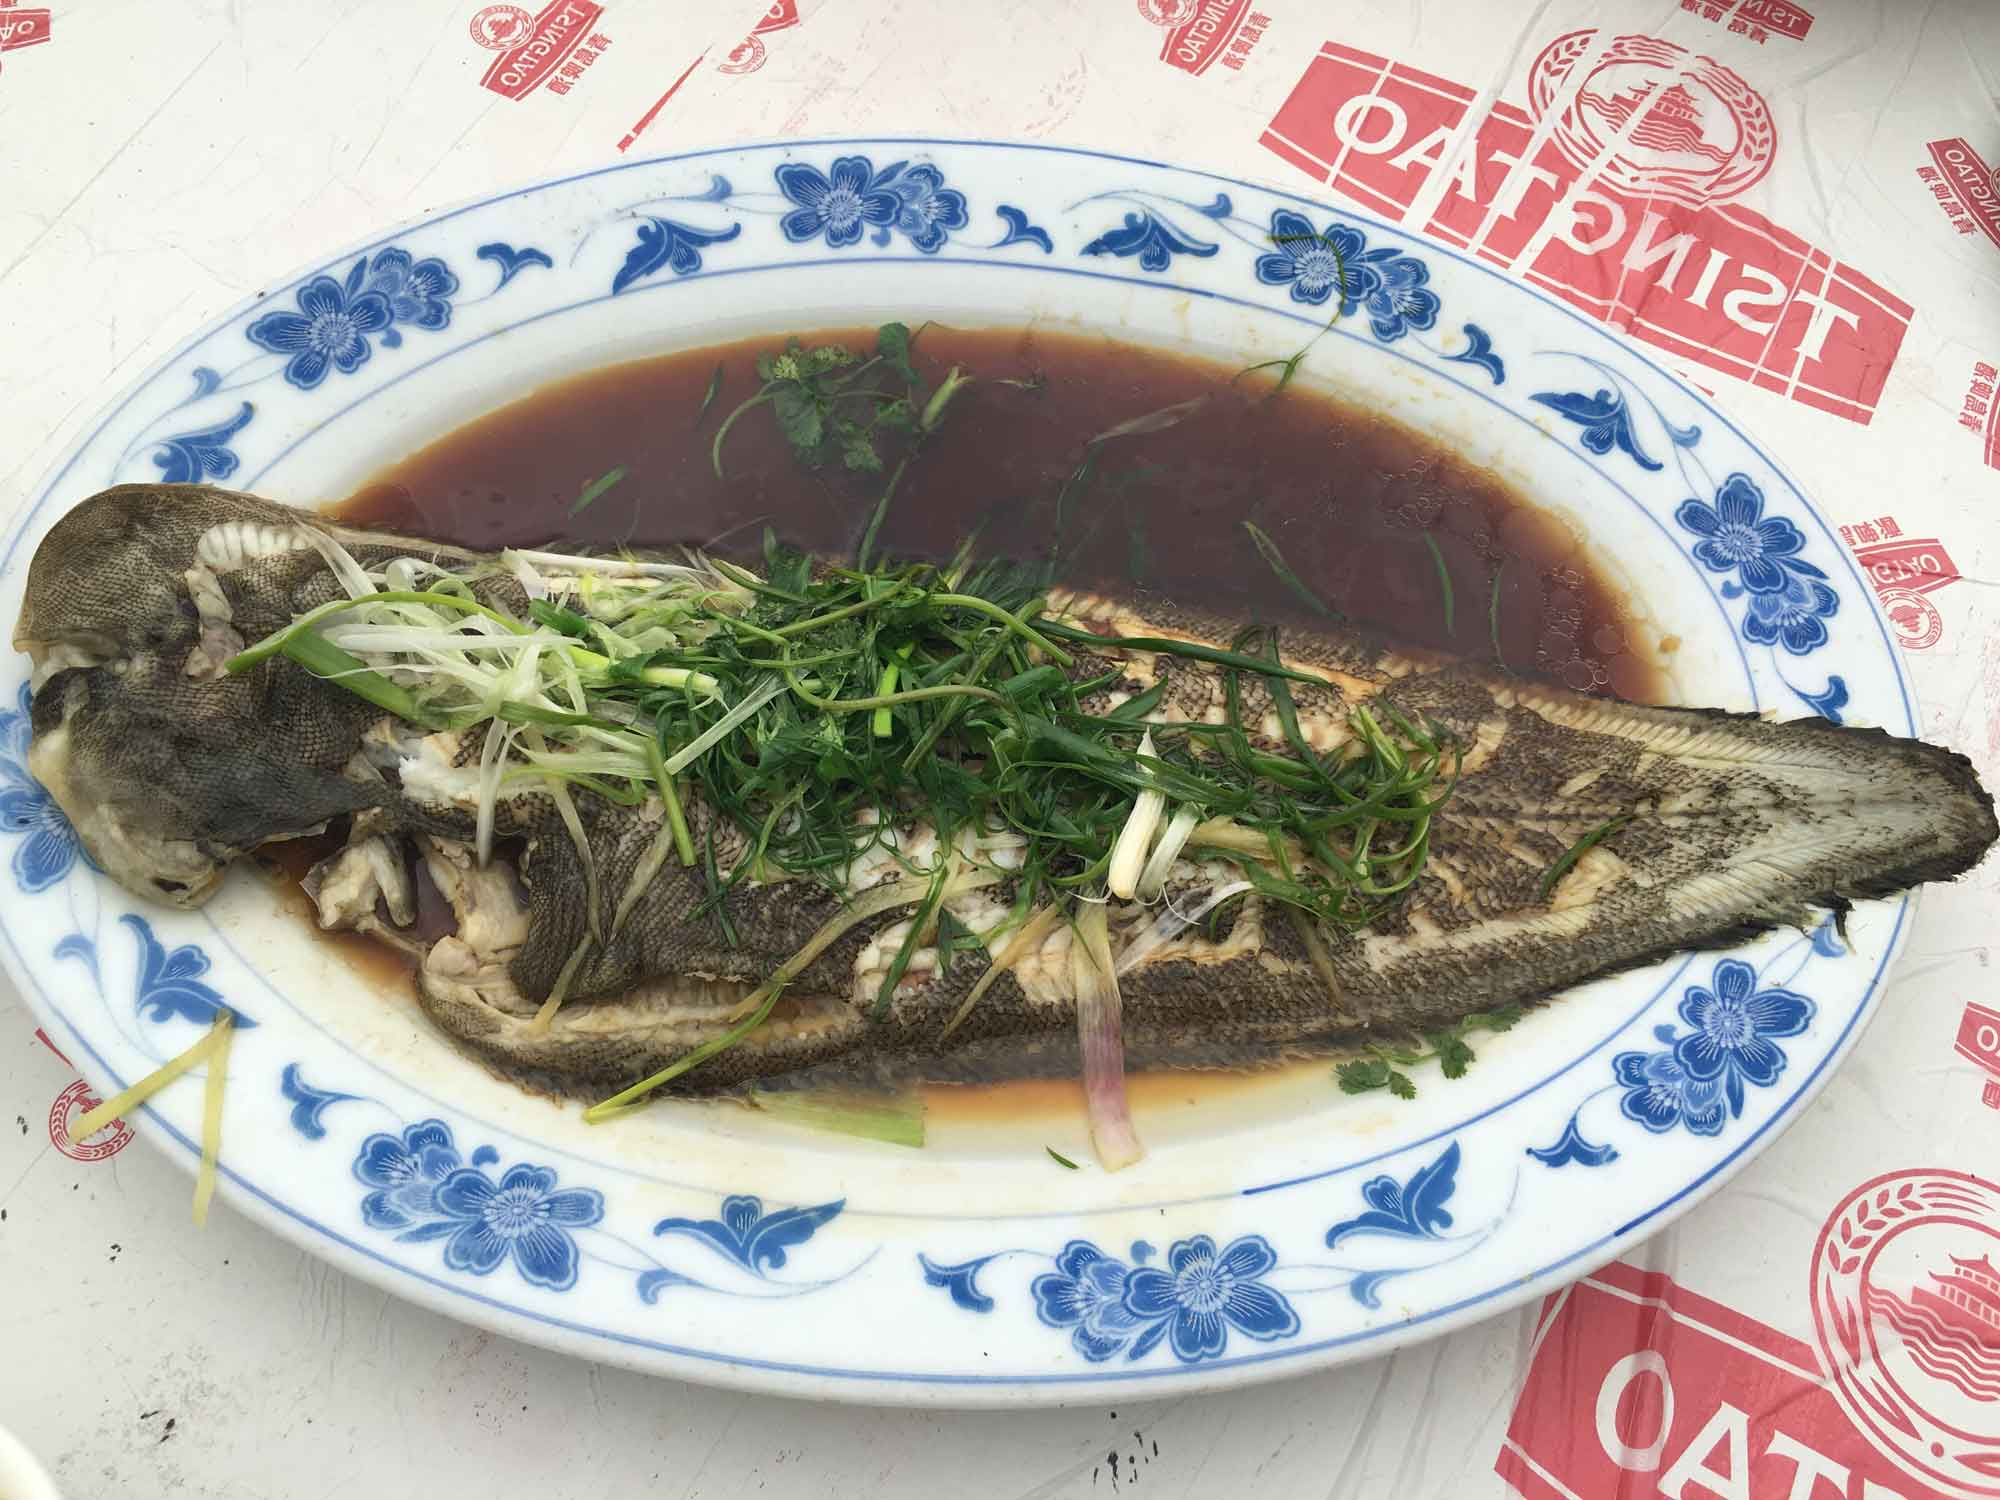 He Fa Ma Tou Mei Shi steamed grouper fish